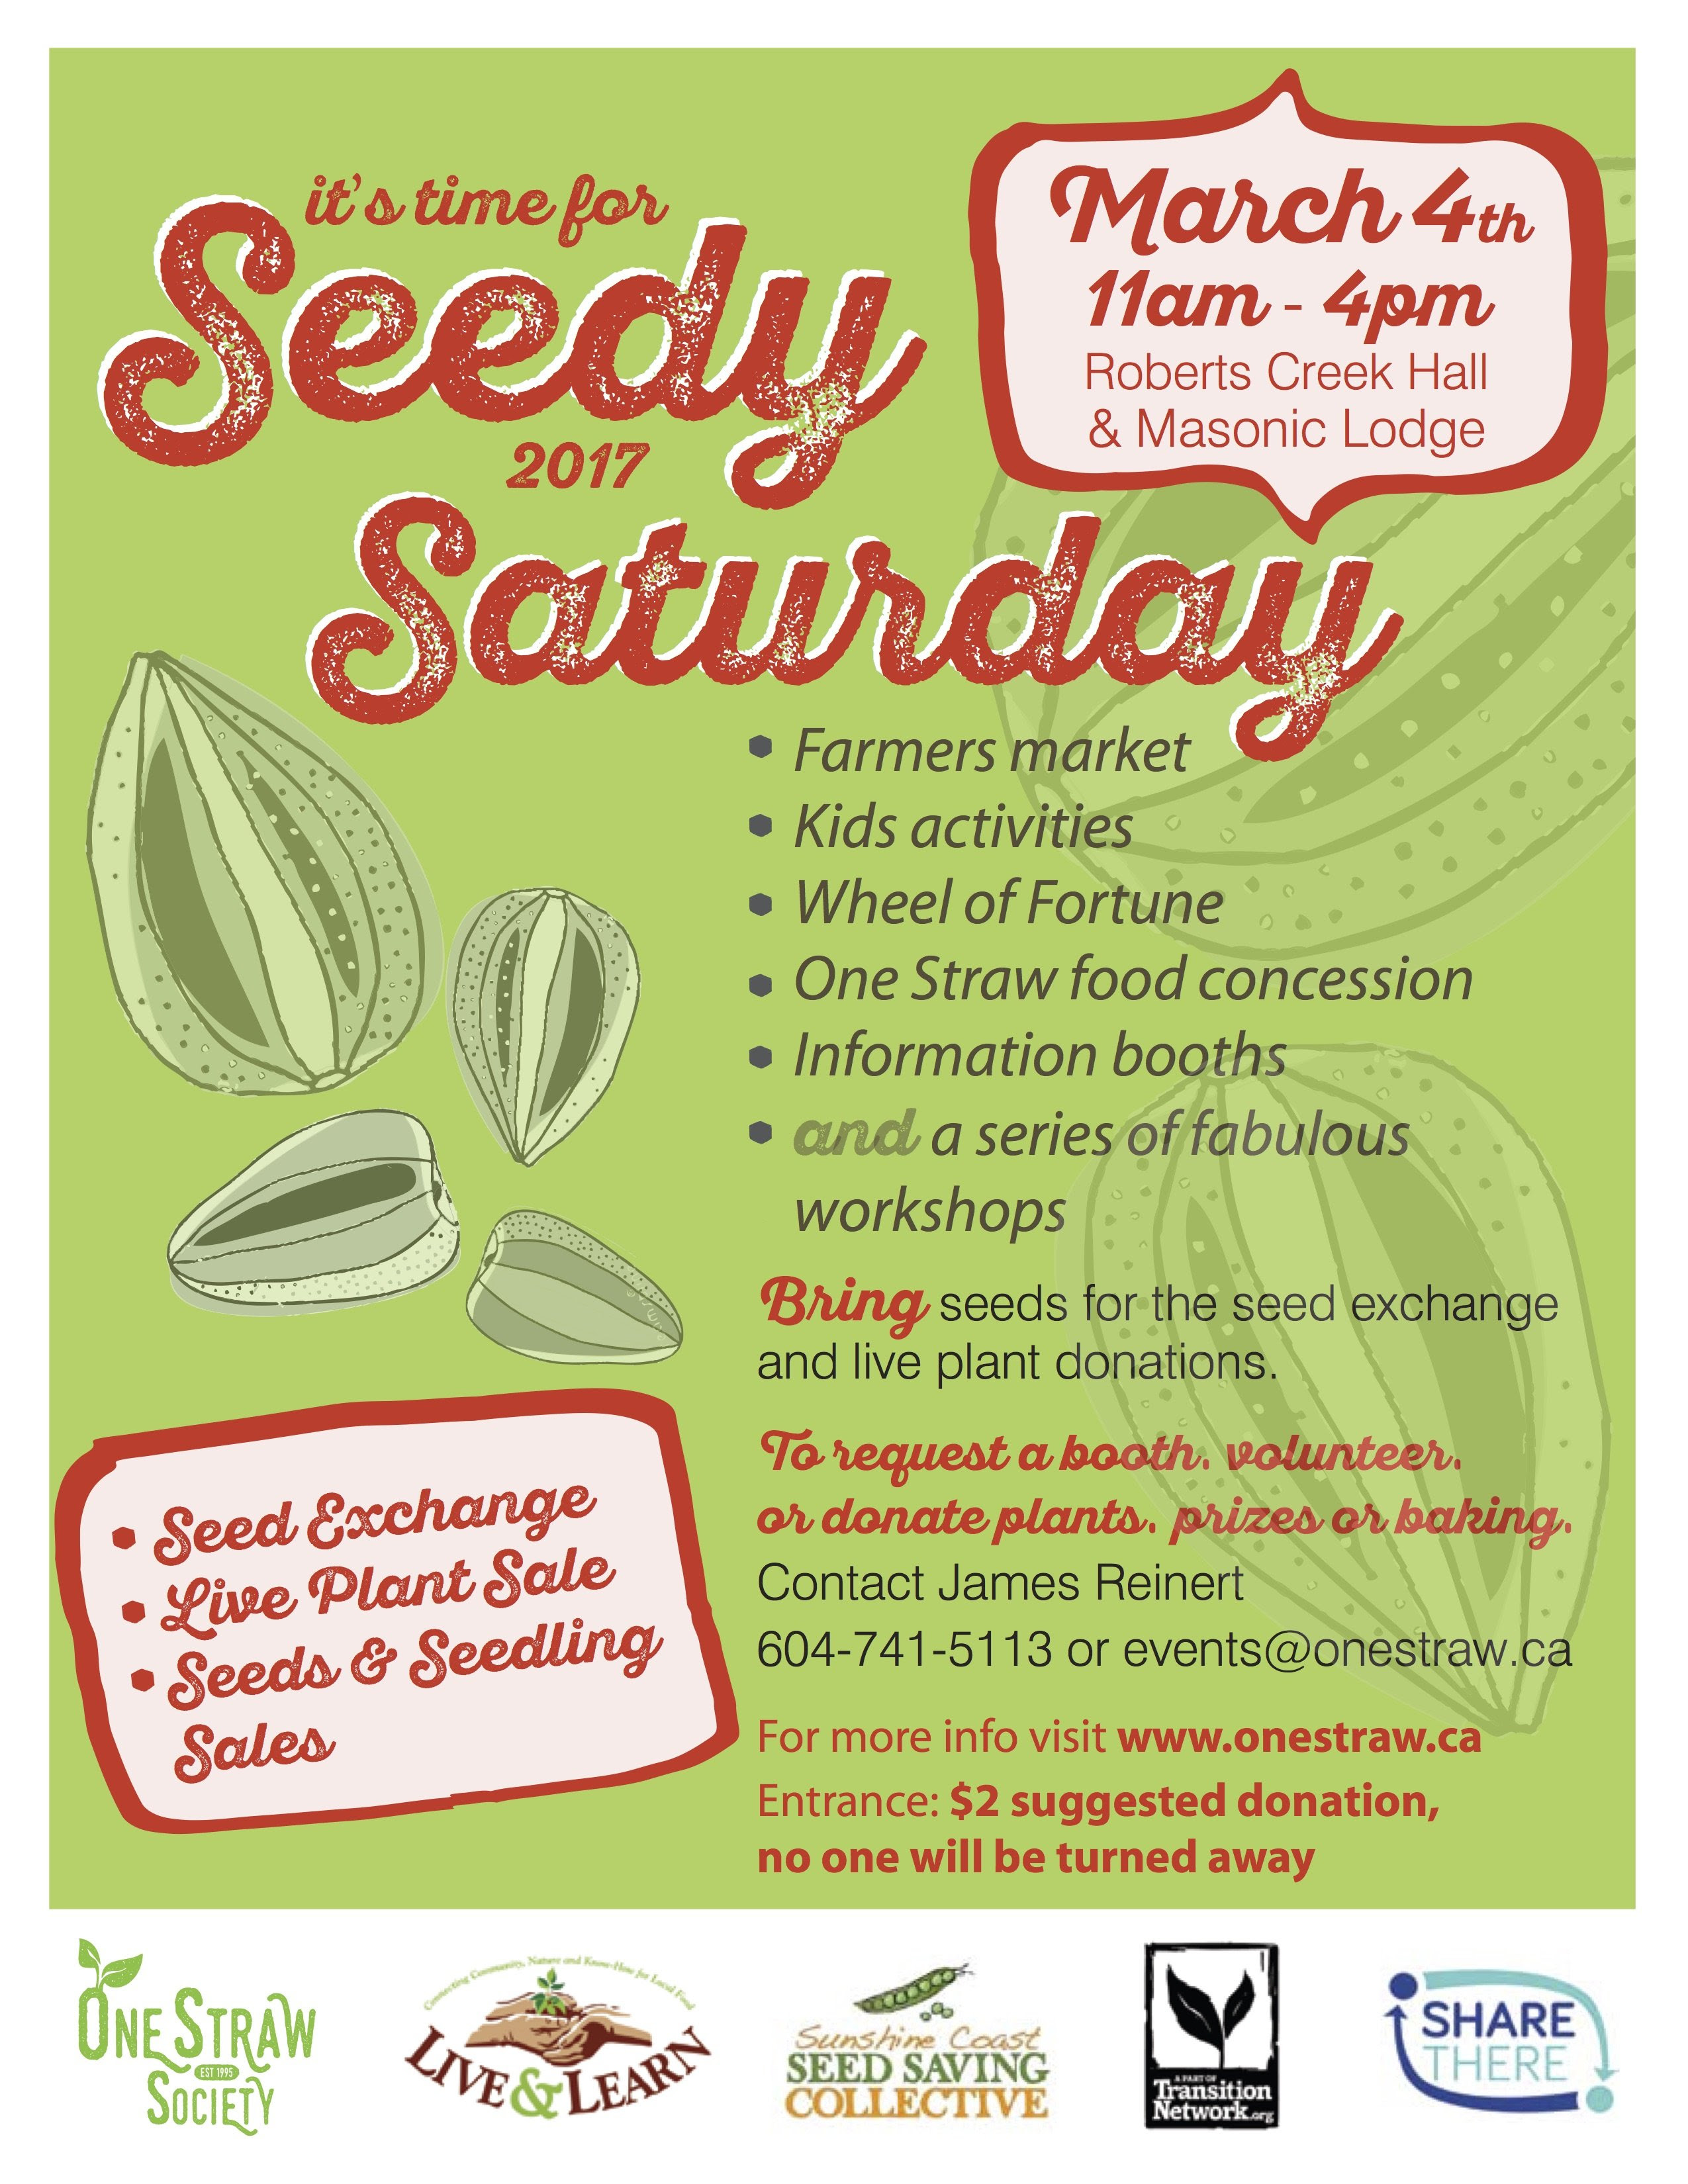 Seedy Saturday @ Roberts Creek Community Hall and Masonic Hall